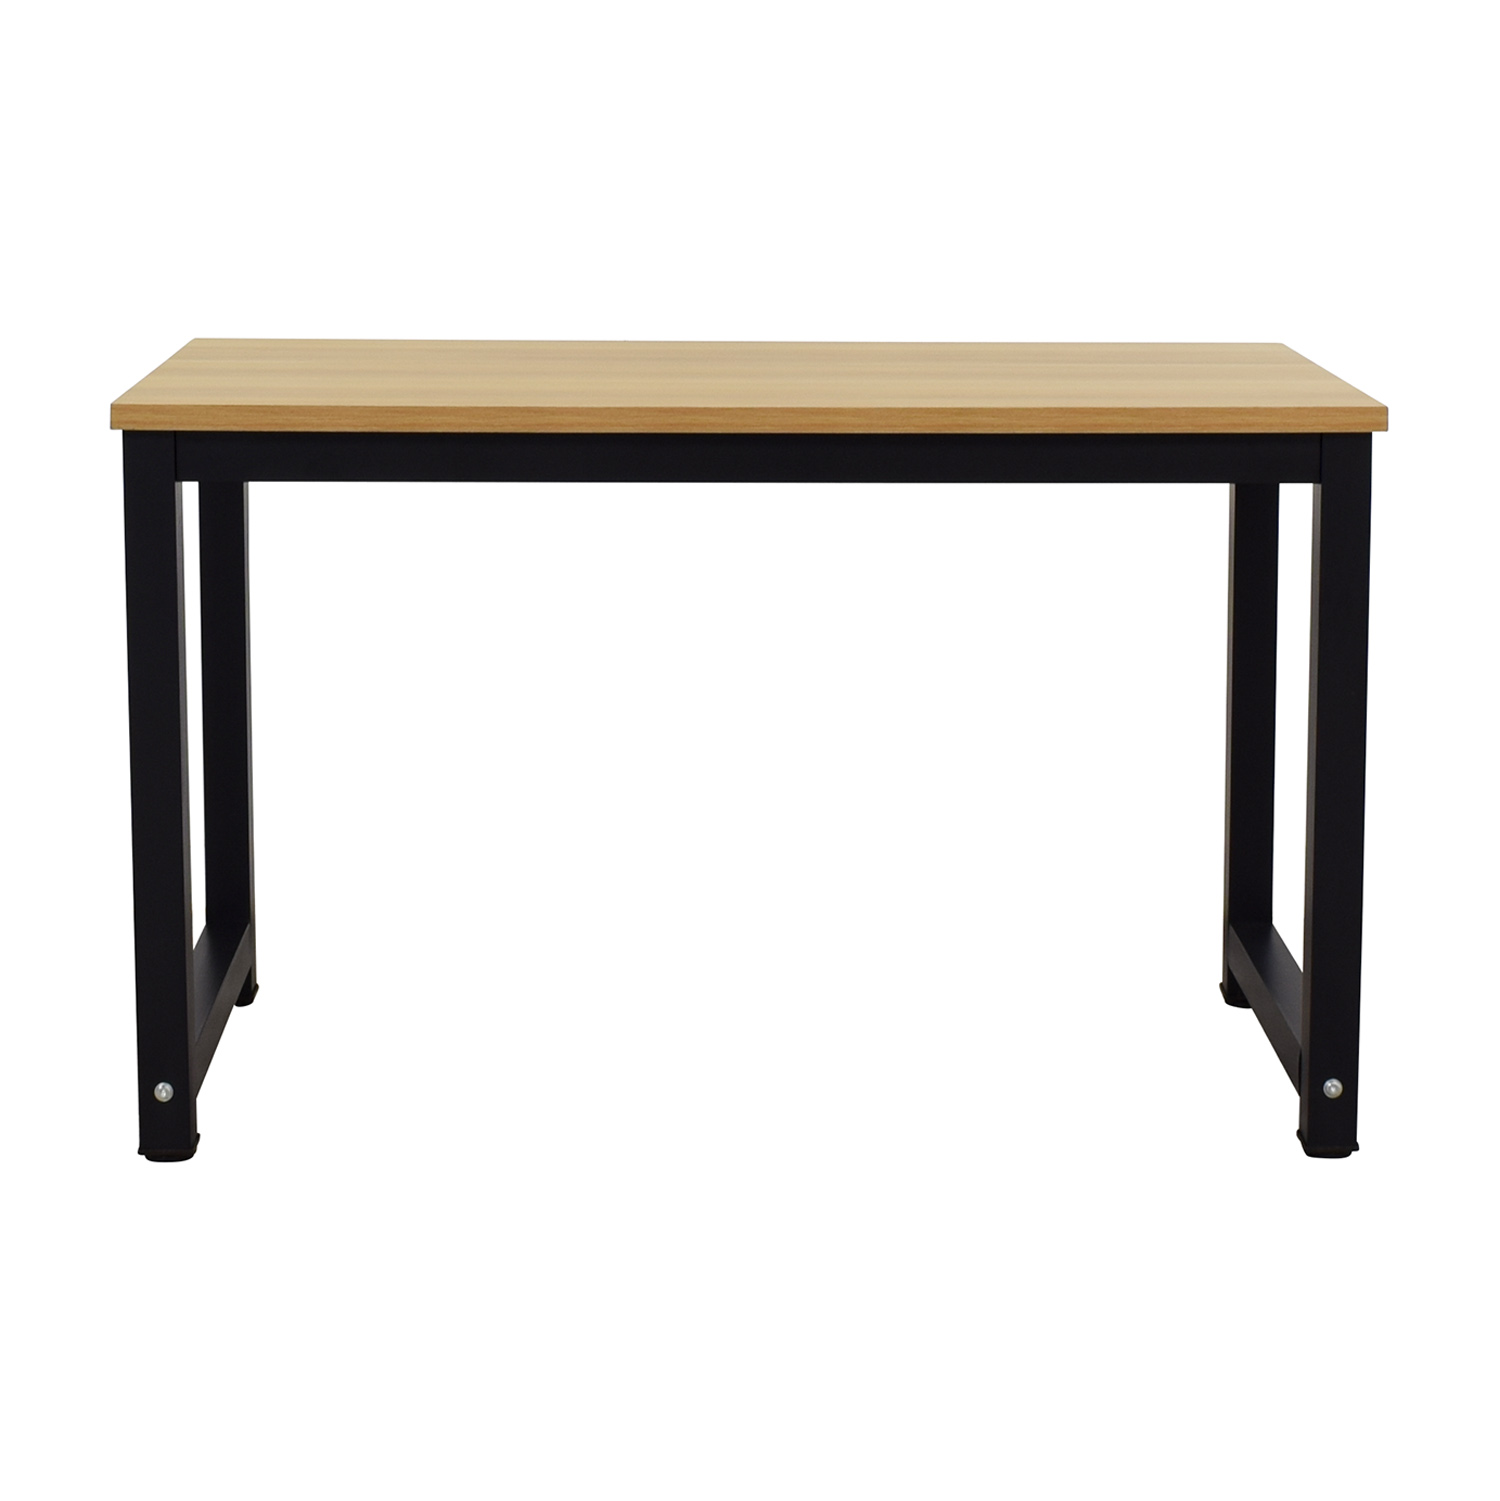 West Elm West Elm Box Frame Desk brown & black